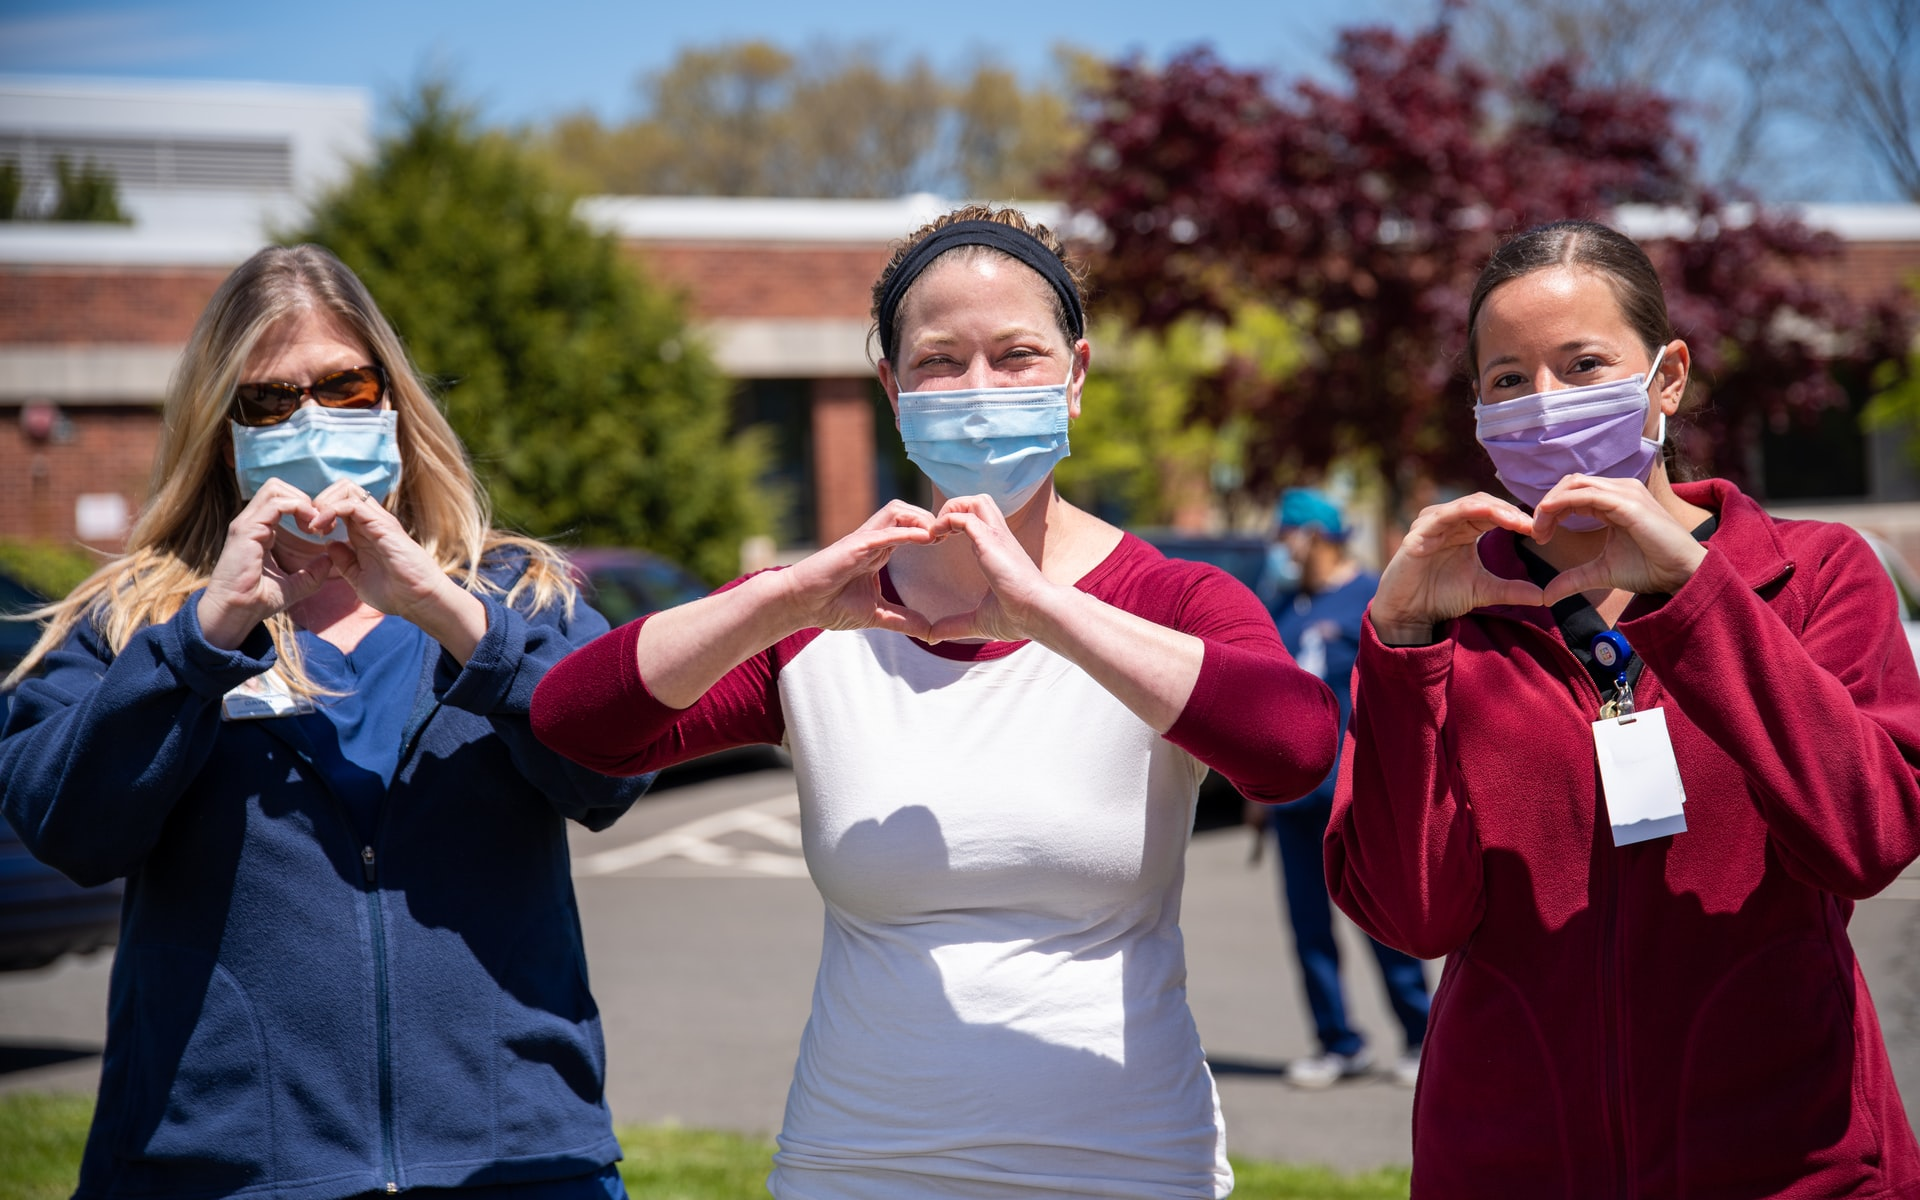 Three females wearing masks making a heart shape with their hands